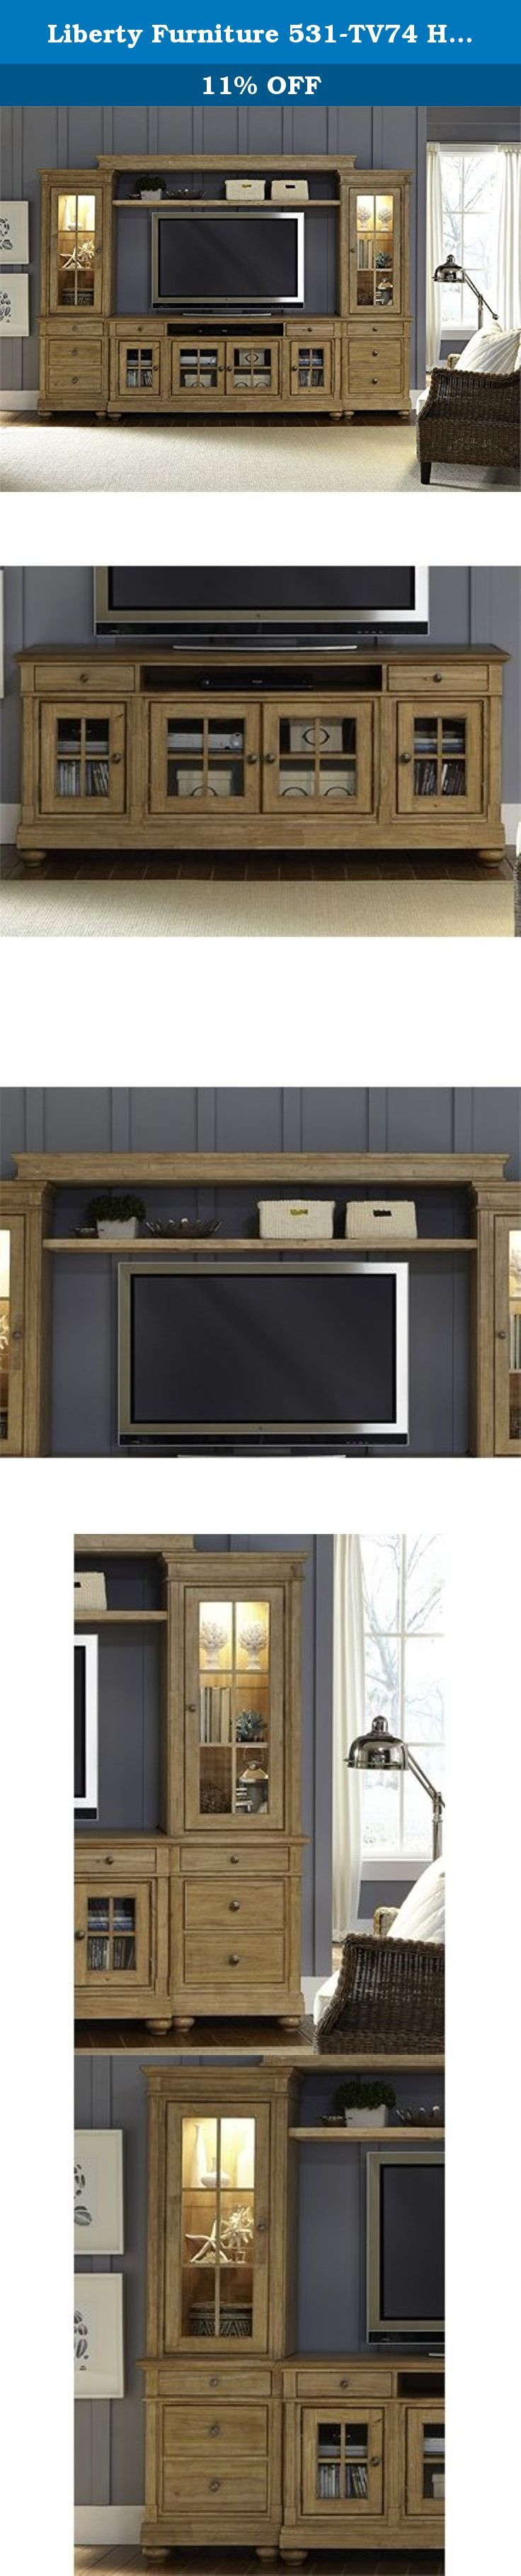 """Liberty Furniture 531-TV74 Harbor View Entertainment TV Stand, 74"""" x 19"""" x 32"""", Sand. Casual cottage styling that can work from coast to coast. Mindy veneers combine with three different finishes that work together to create an eclectic feel for today's homes. Versatile pieces with charming details such as turned posts and bun feet. Liberty Furniture is a dedicated provider of all wood products including bedroom, dining, entertainment, occasional and home office categories. Our products…"""